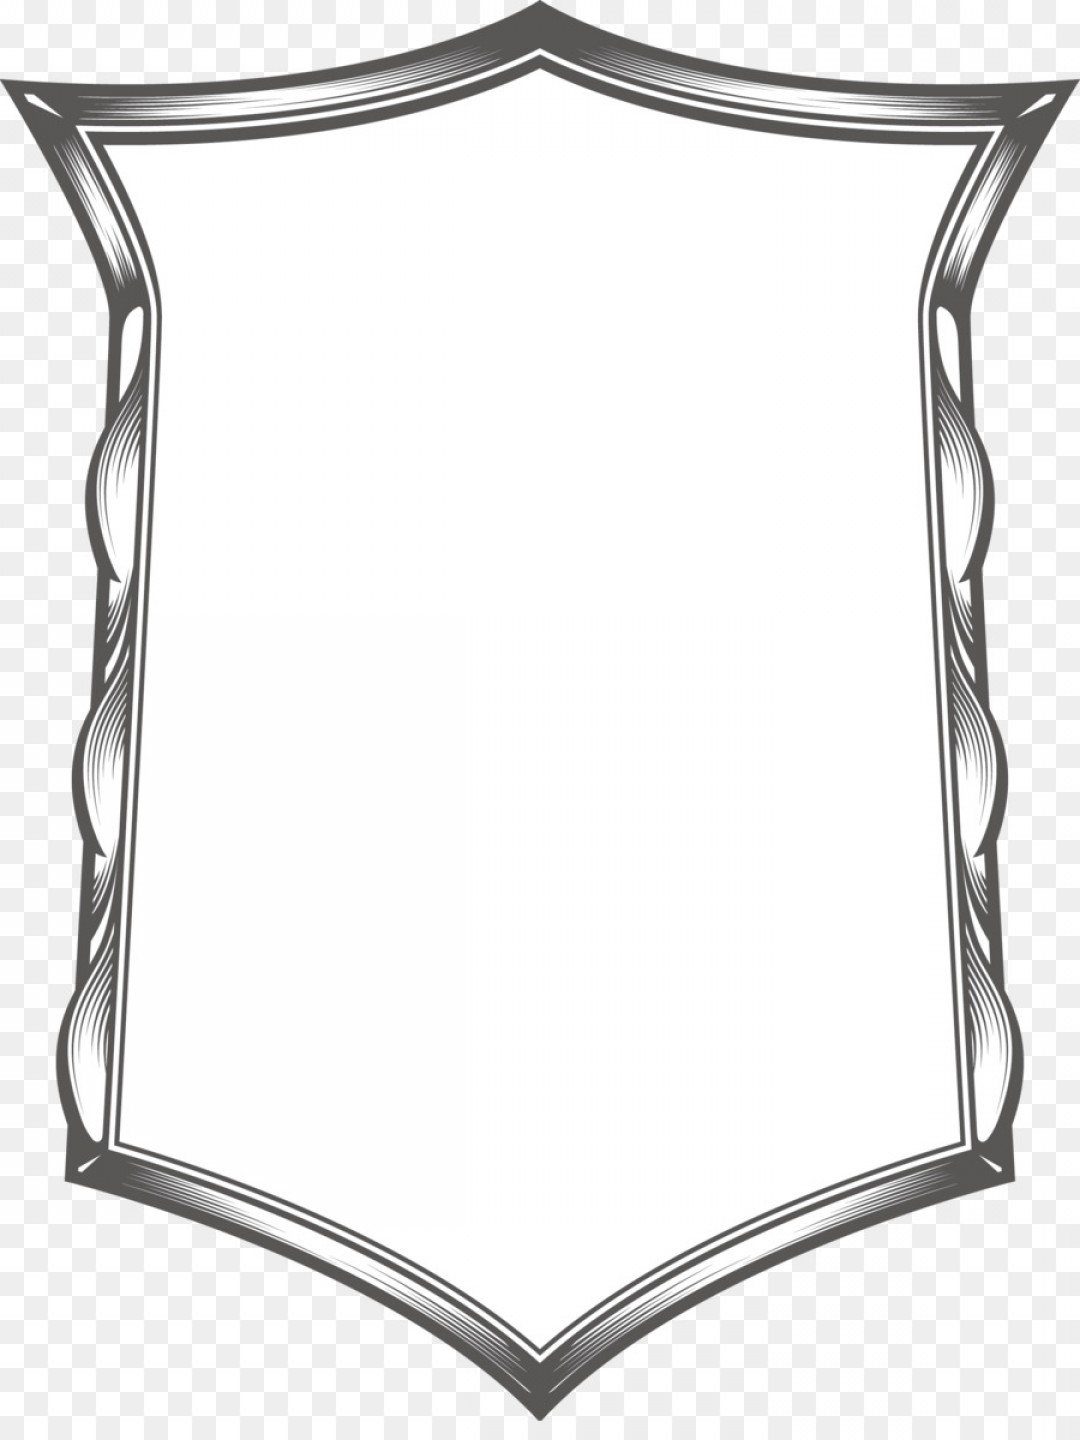 Square Black Vector Border Frame: Png Black And White Vintage Vector Border